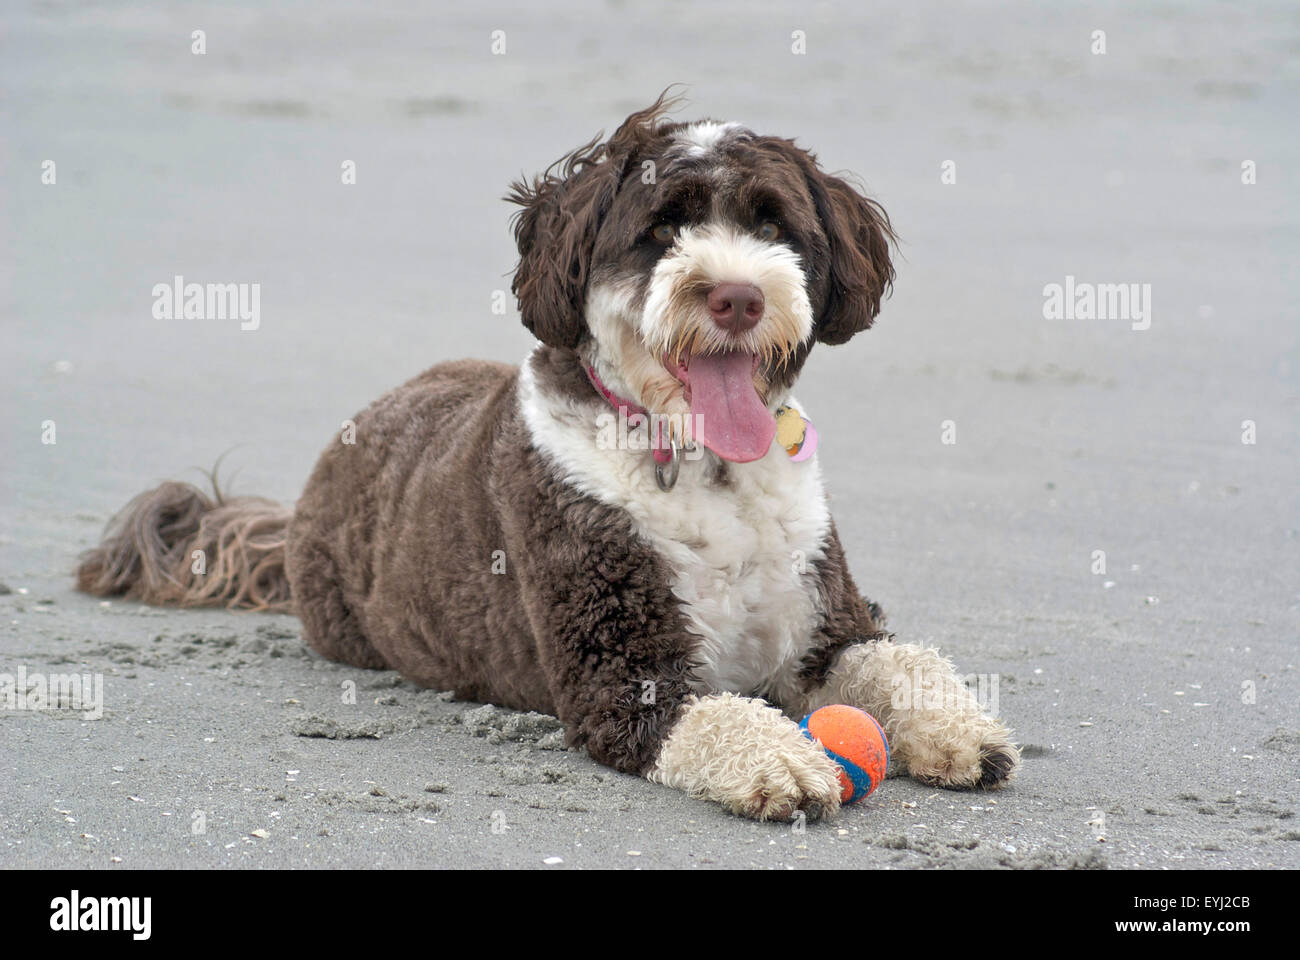 A brown and white Portuguese Water Dog lying on a beach with a ball, panting - Stock Image